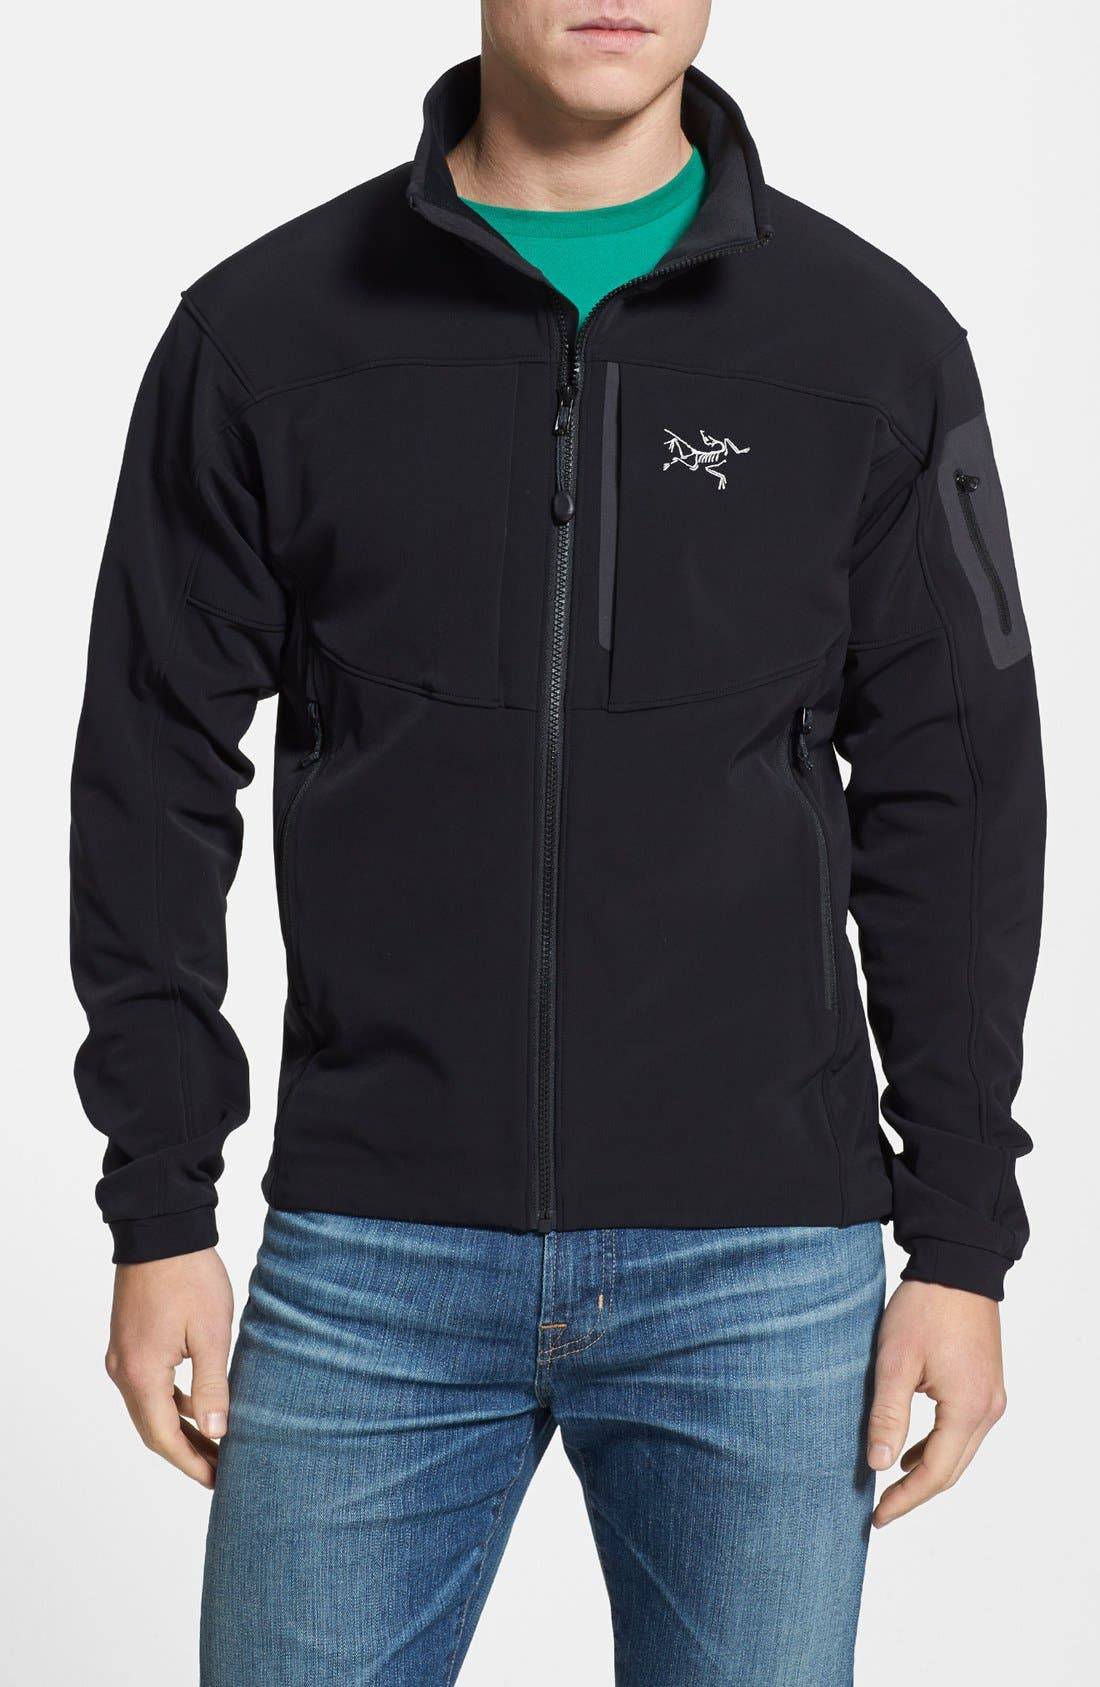 Alternate Image 1 Selected - Arc'teryx 'Gamma MX' Athletic Fit Soft Shell Jacket